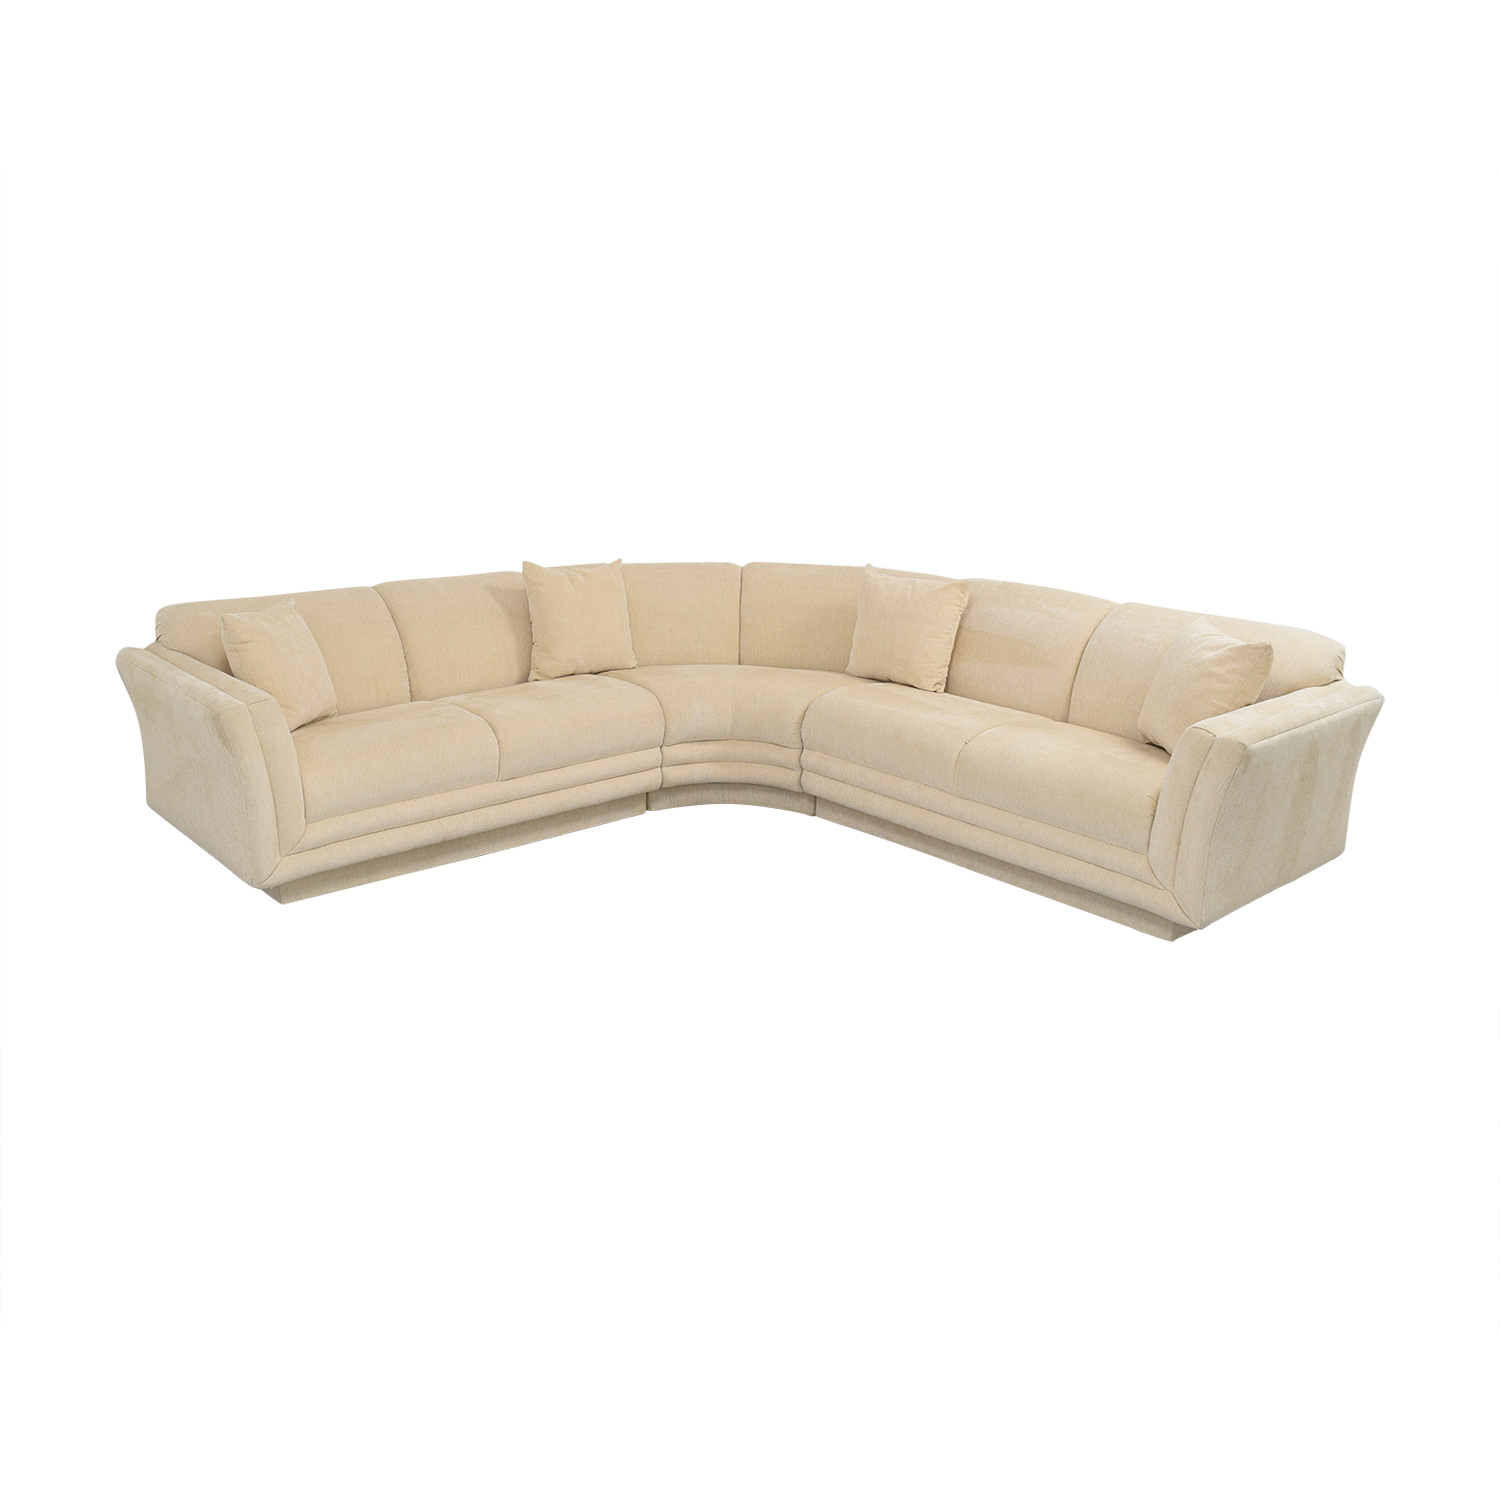 81 off huffman koos huffman koos curved sectional sofa sofas